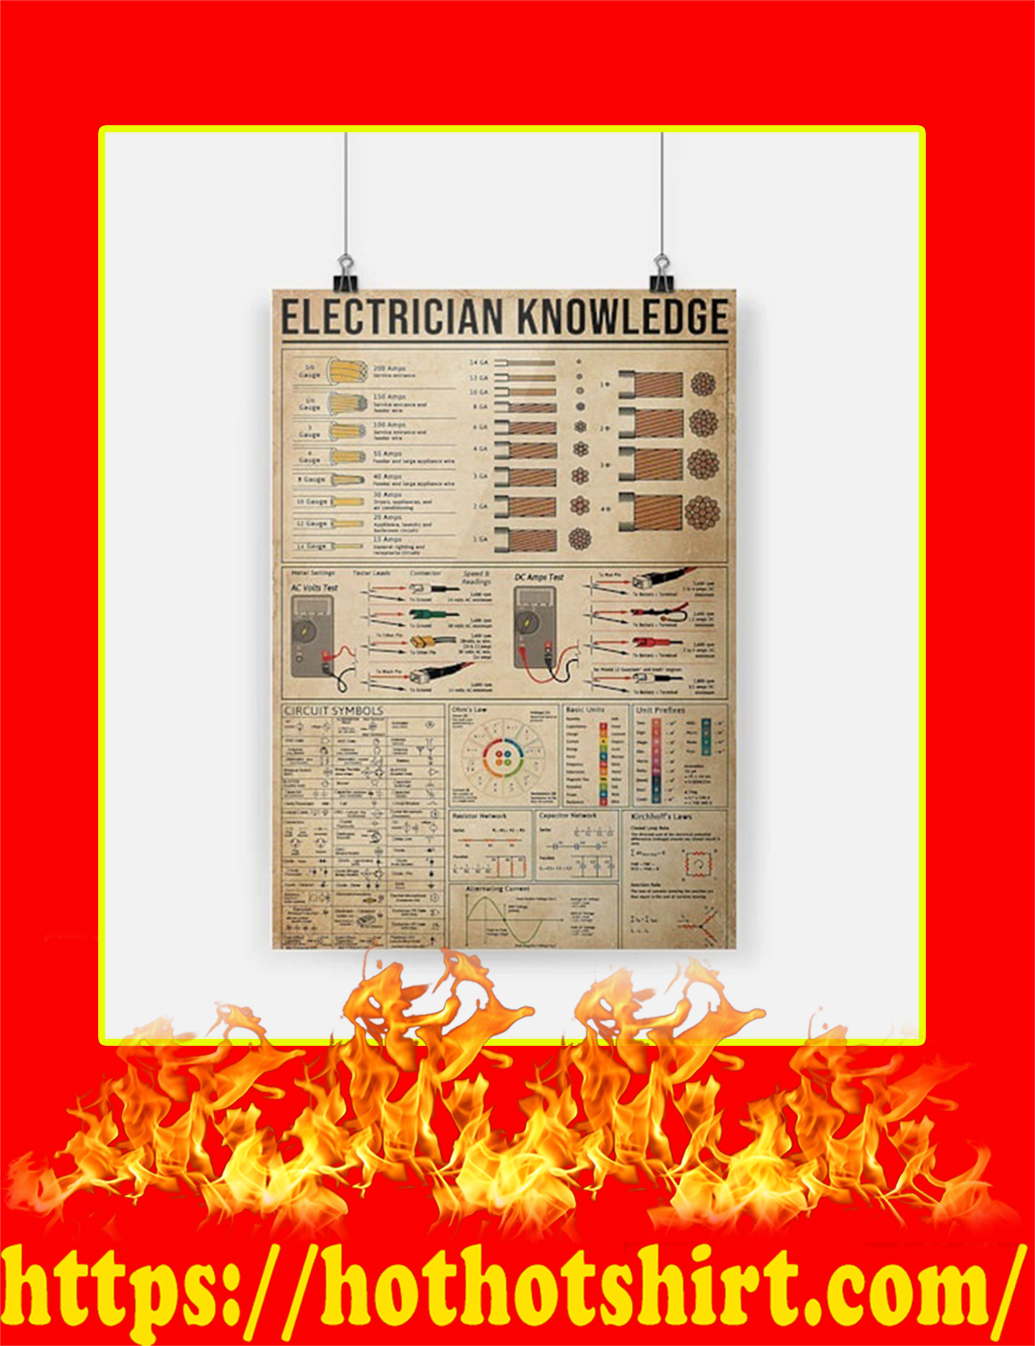 Electrician Knowledge Poster - A2